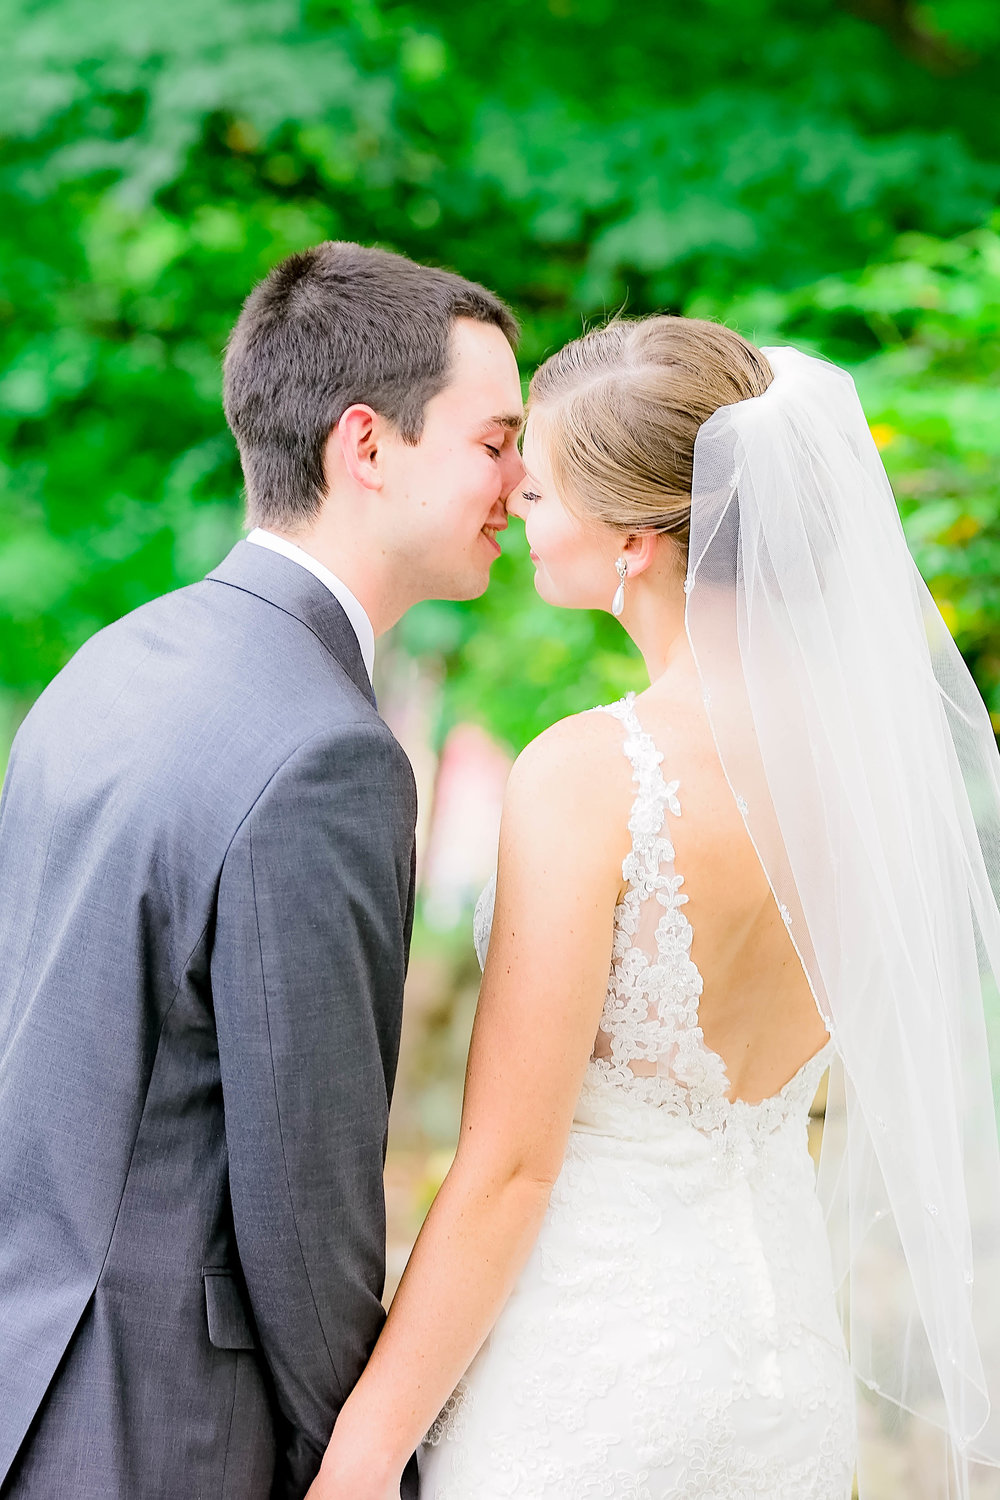 Hot Springs, NC wedding, East Tennessee Wedding photography, bride and groom kiss